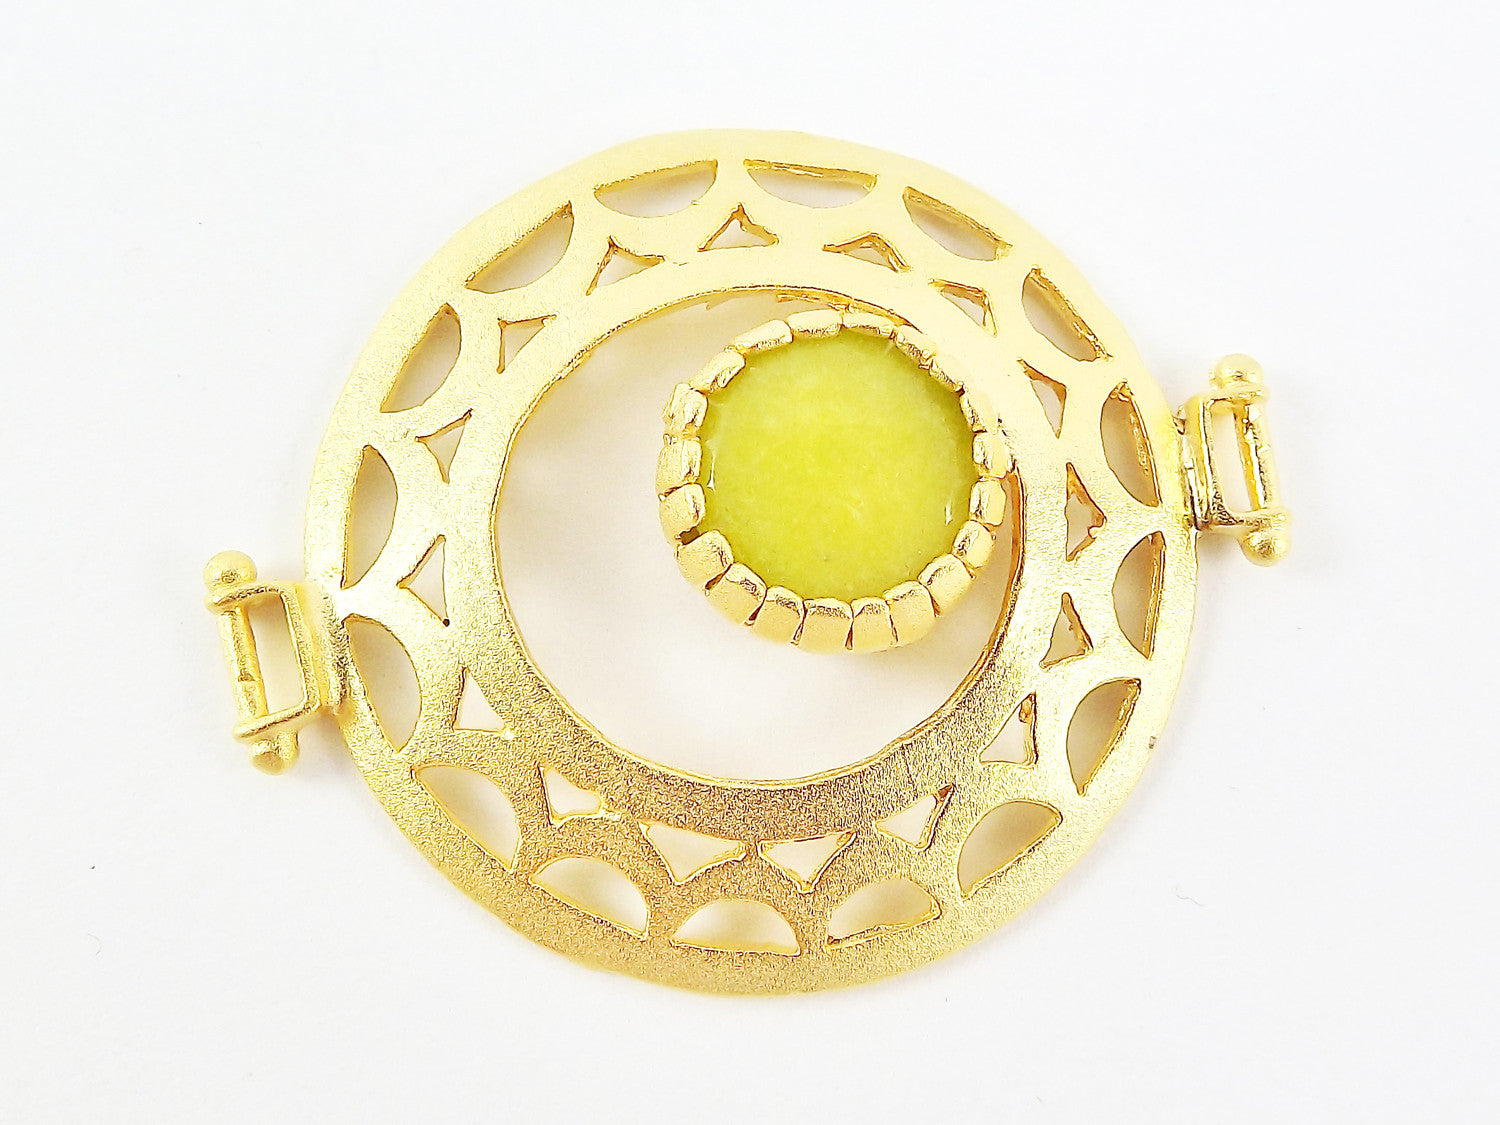 Lime Green Jade Stone Fretworked Circle Connector Pendant - 22k Matte Gold Plated - 1PC